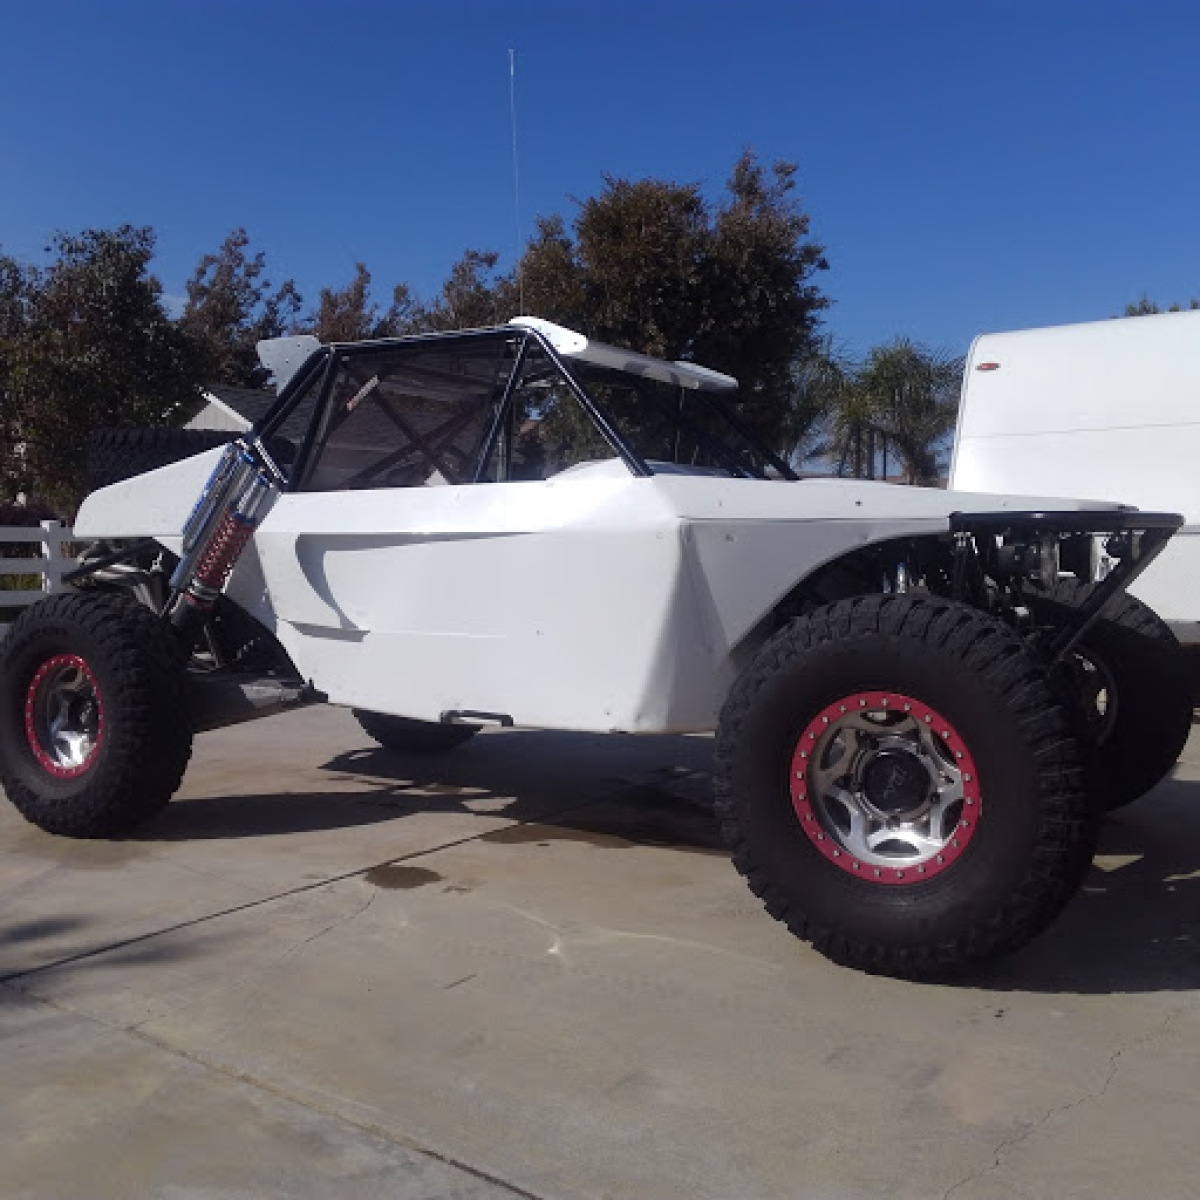 Off Road Classifieds | LOWERED PRICE - RACE CAR - NORRA - PRE-RUNNER